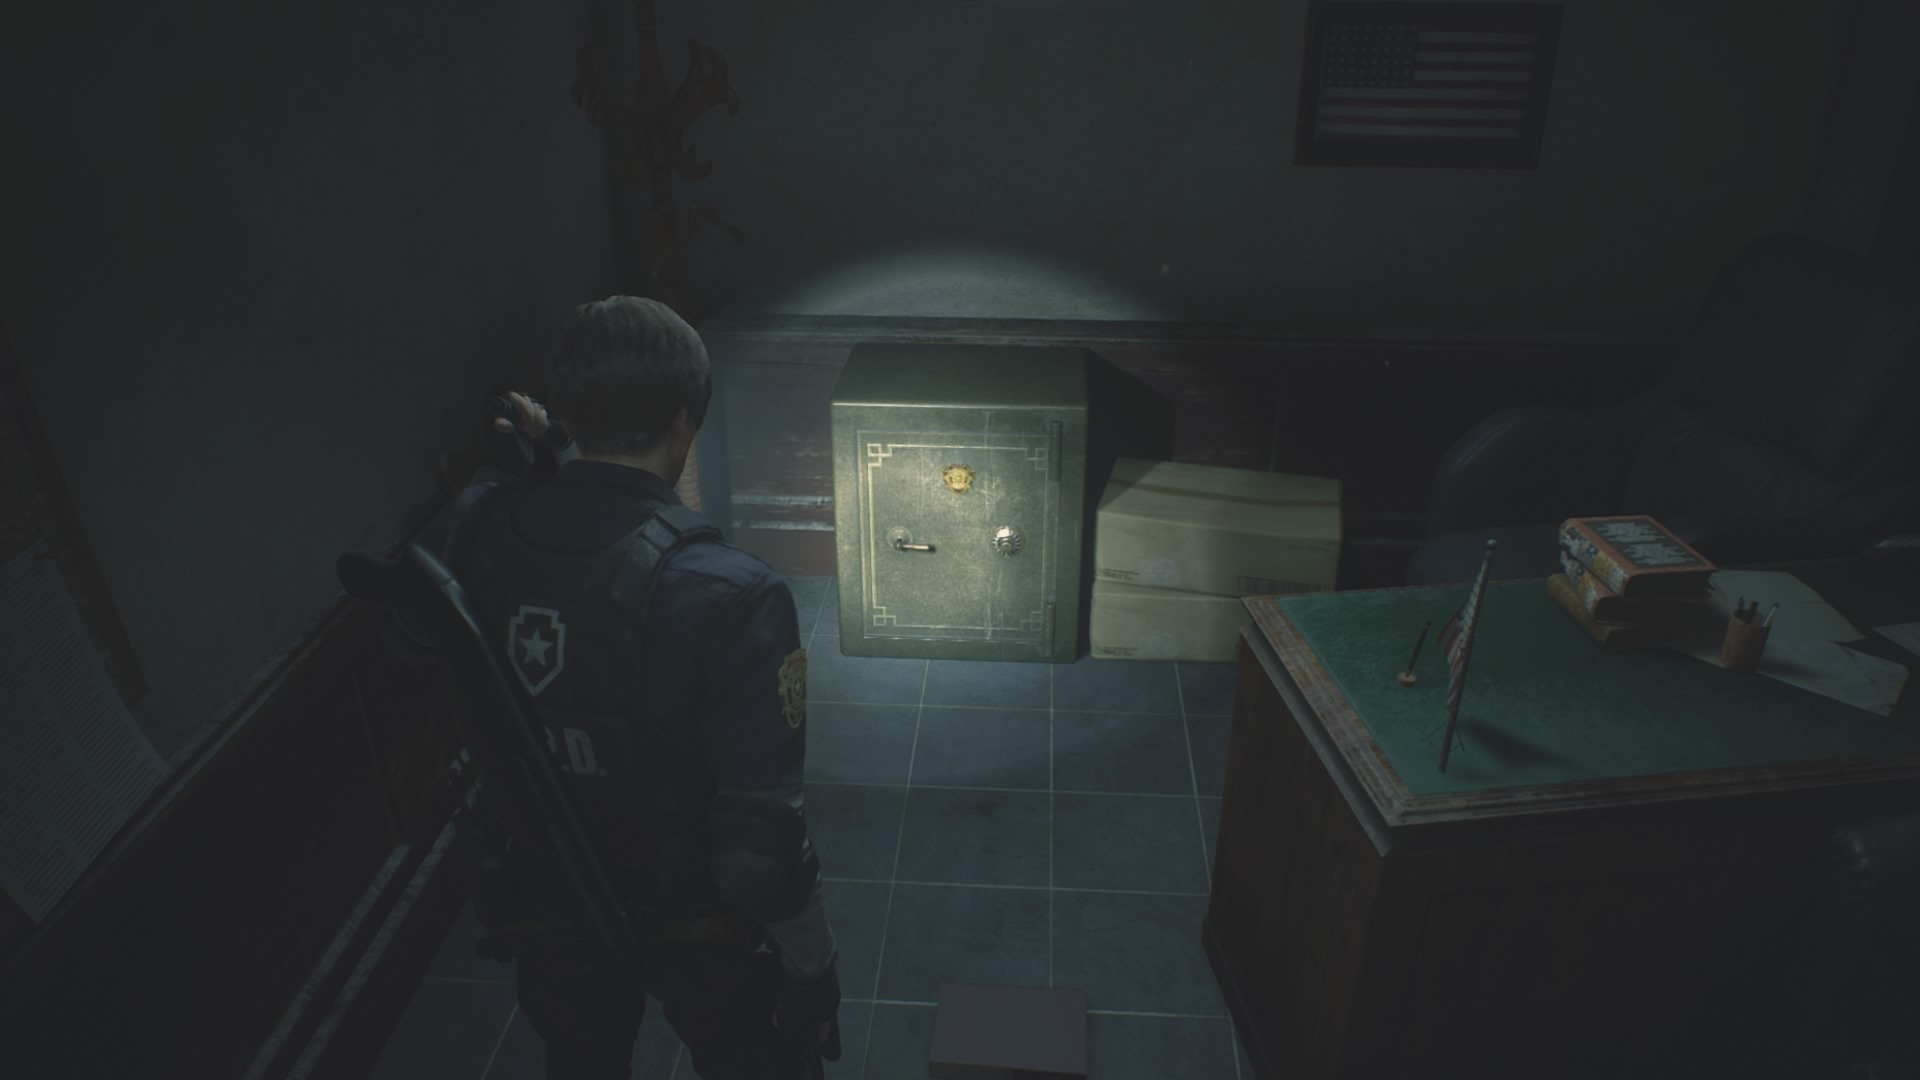 Resident Evil 2 Safe Code - What is the Demo Safe Code? | GameWatcher